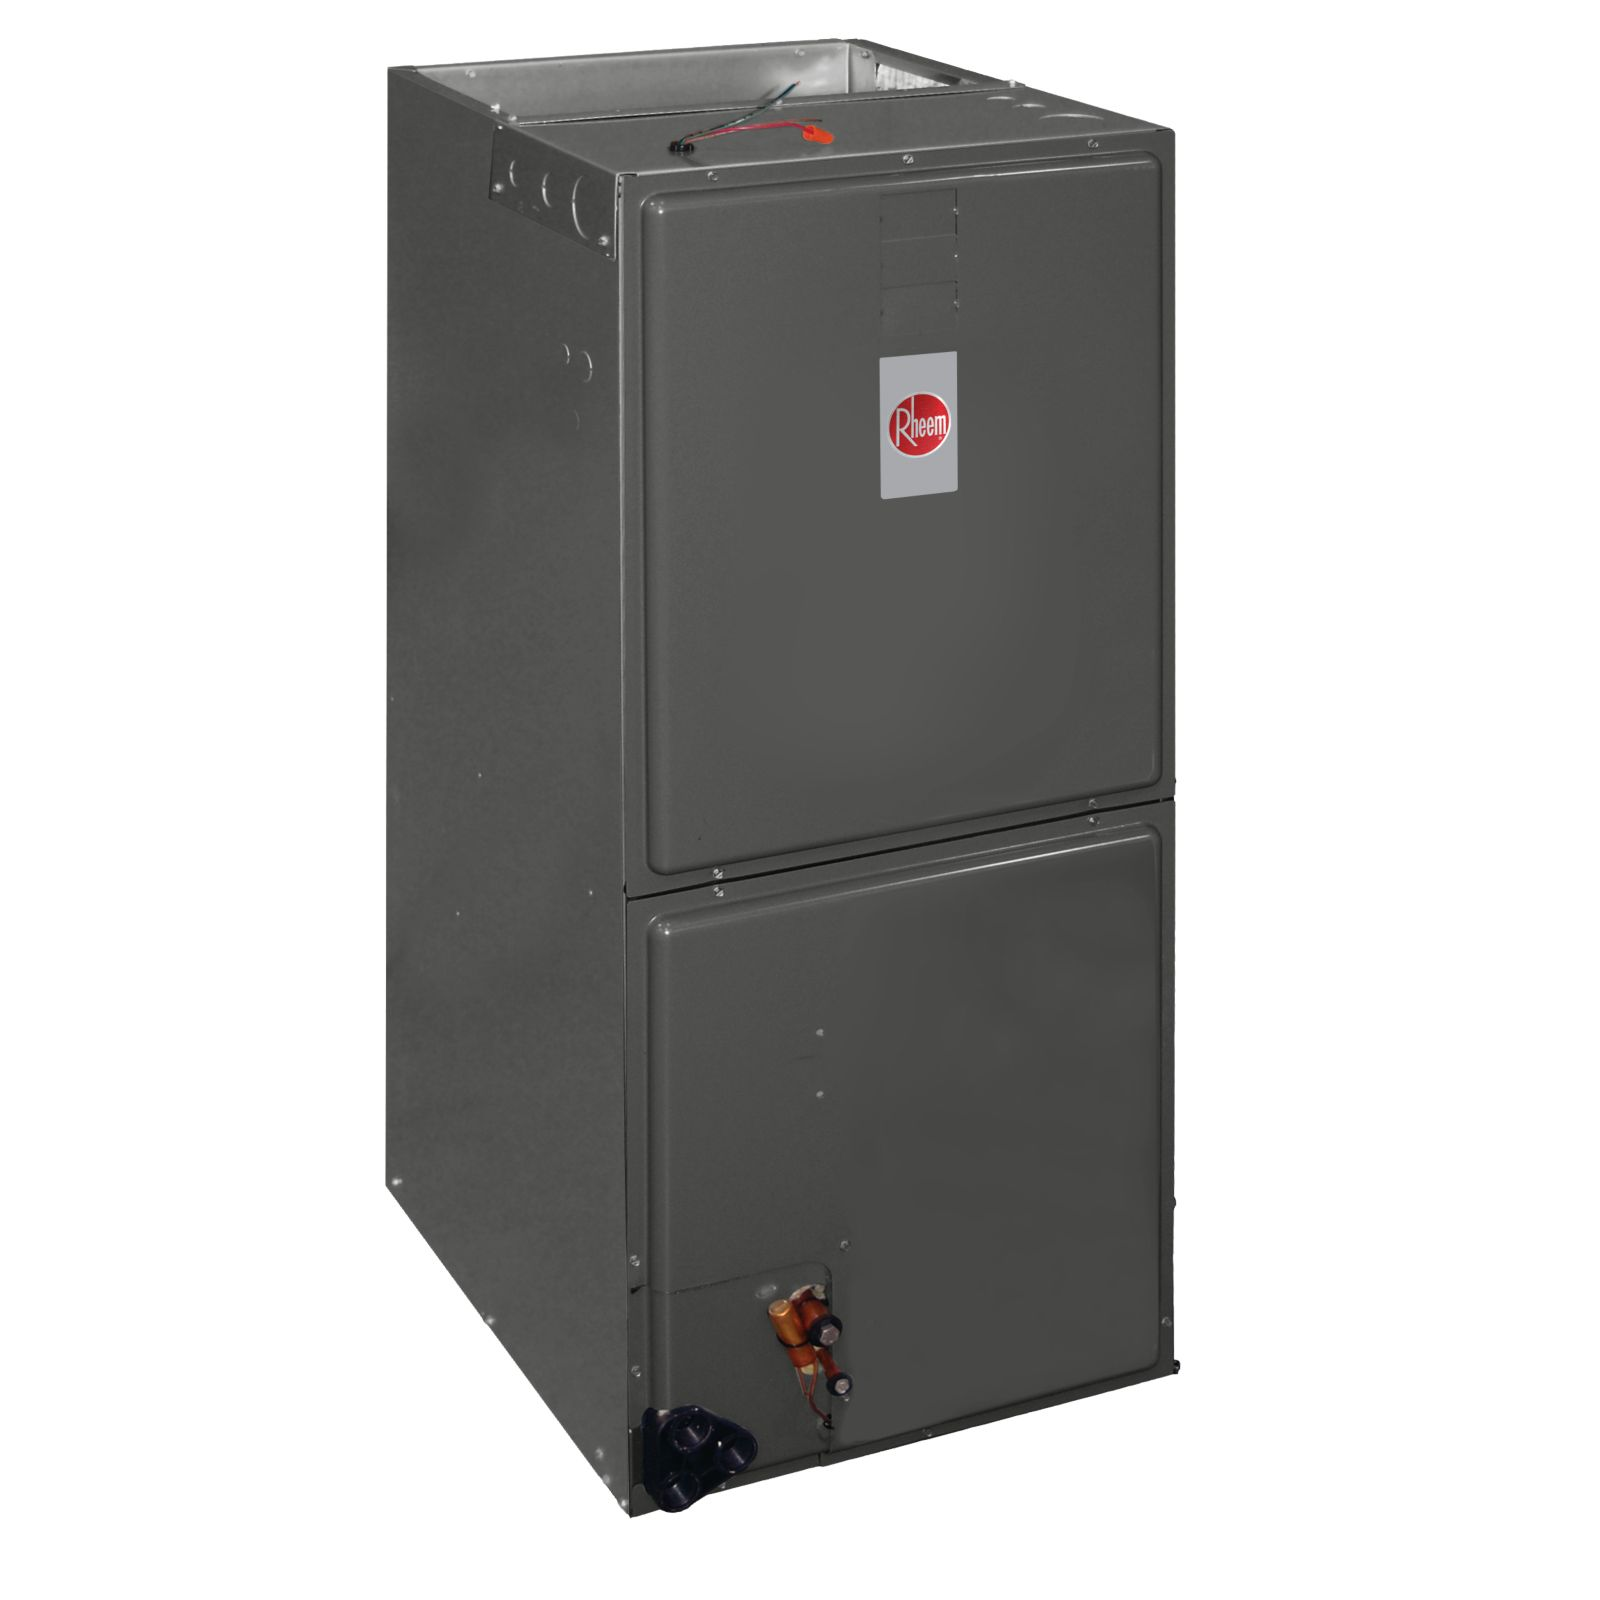 Rheem RHLL-HM6024JA - RHLL Series 5 Ton Multiposition High Efficiency Air Handler - Up to 16 SEER - R410A - X13 (ECM) Motor